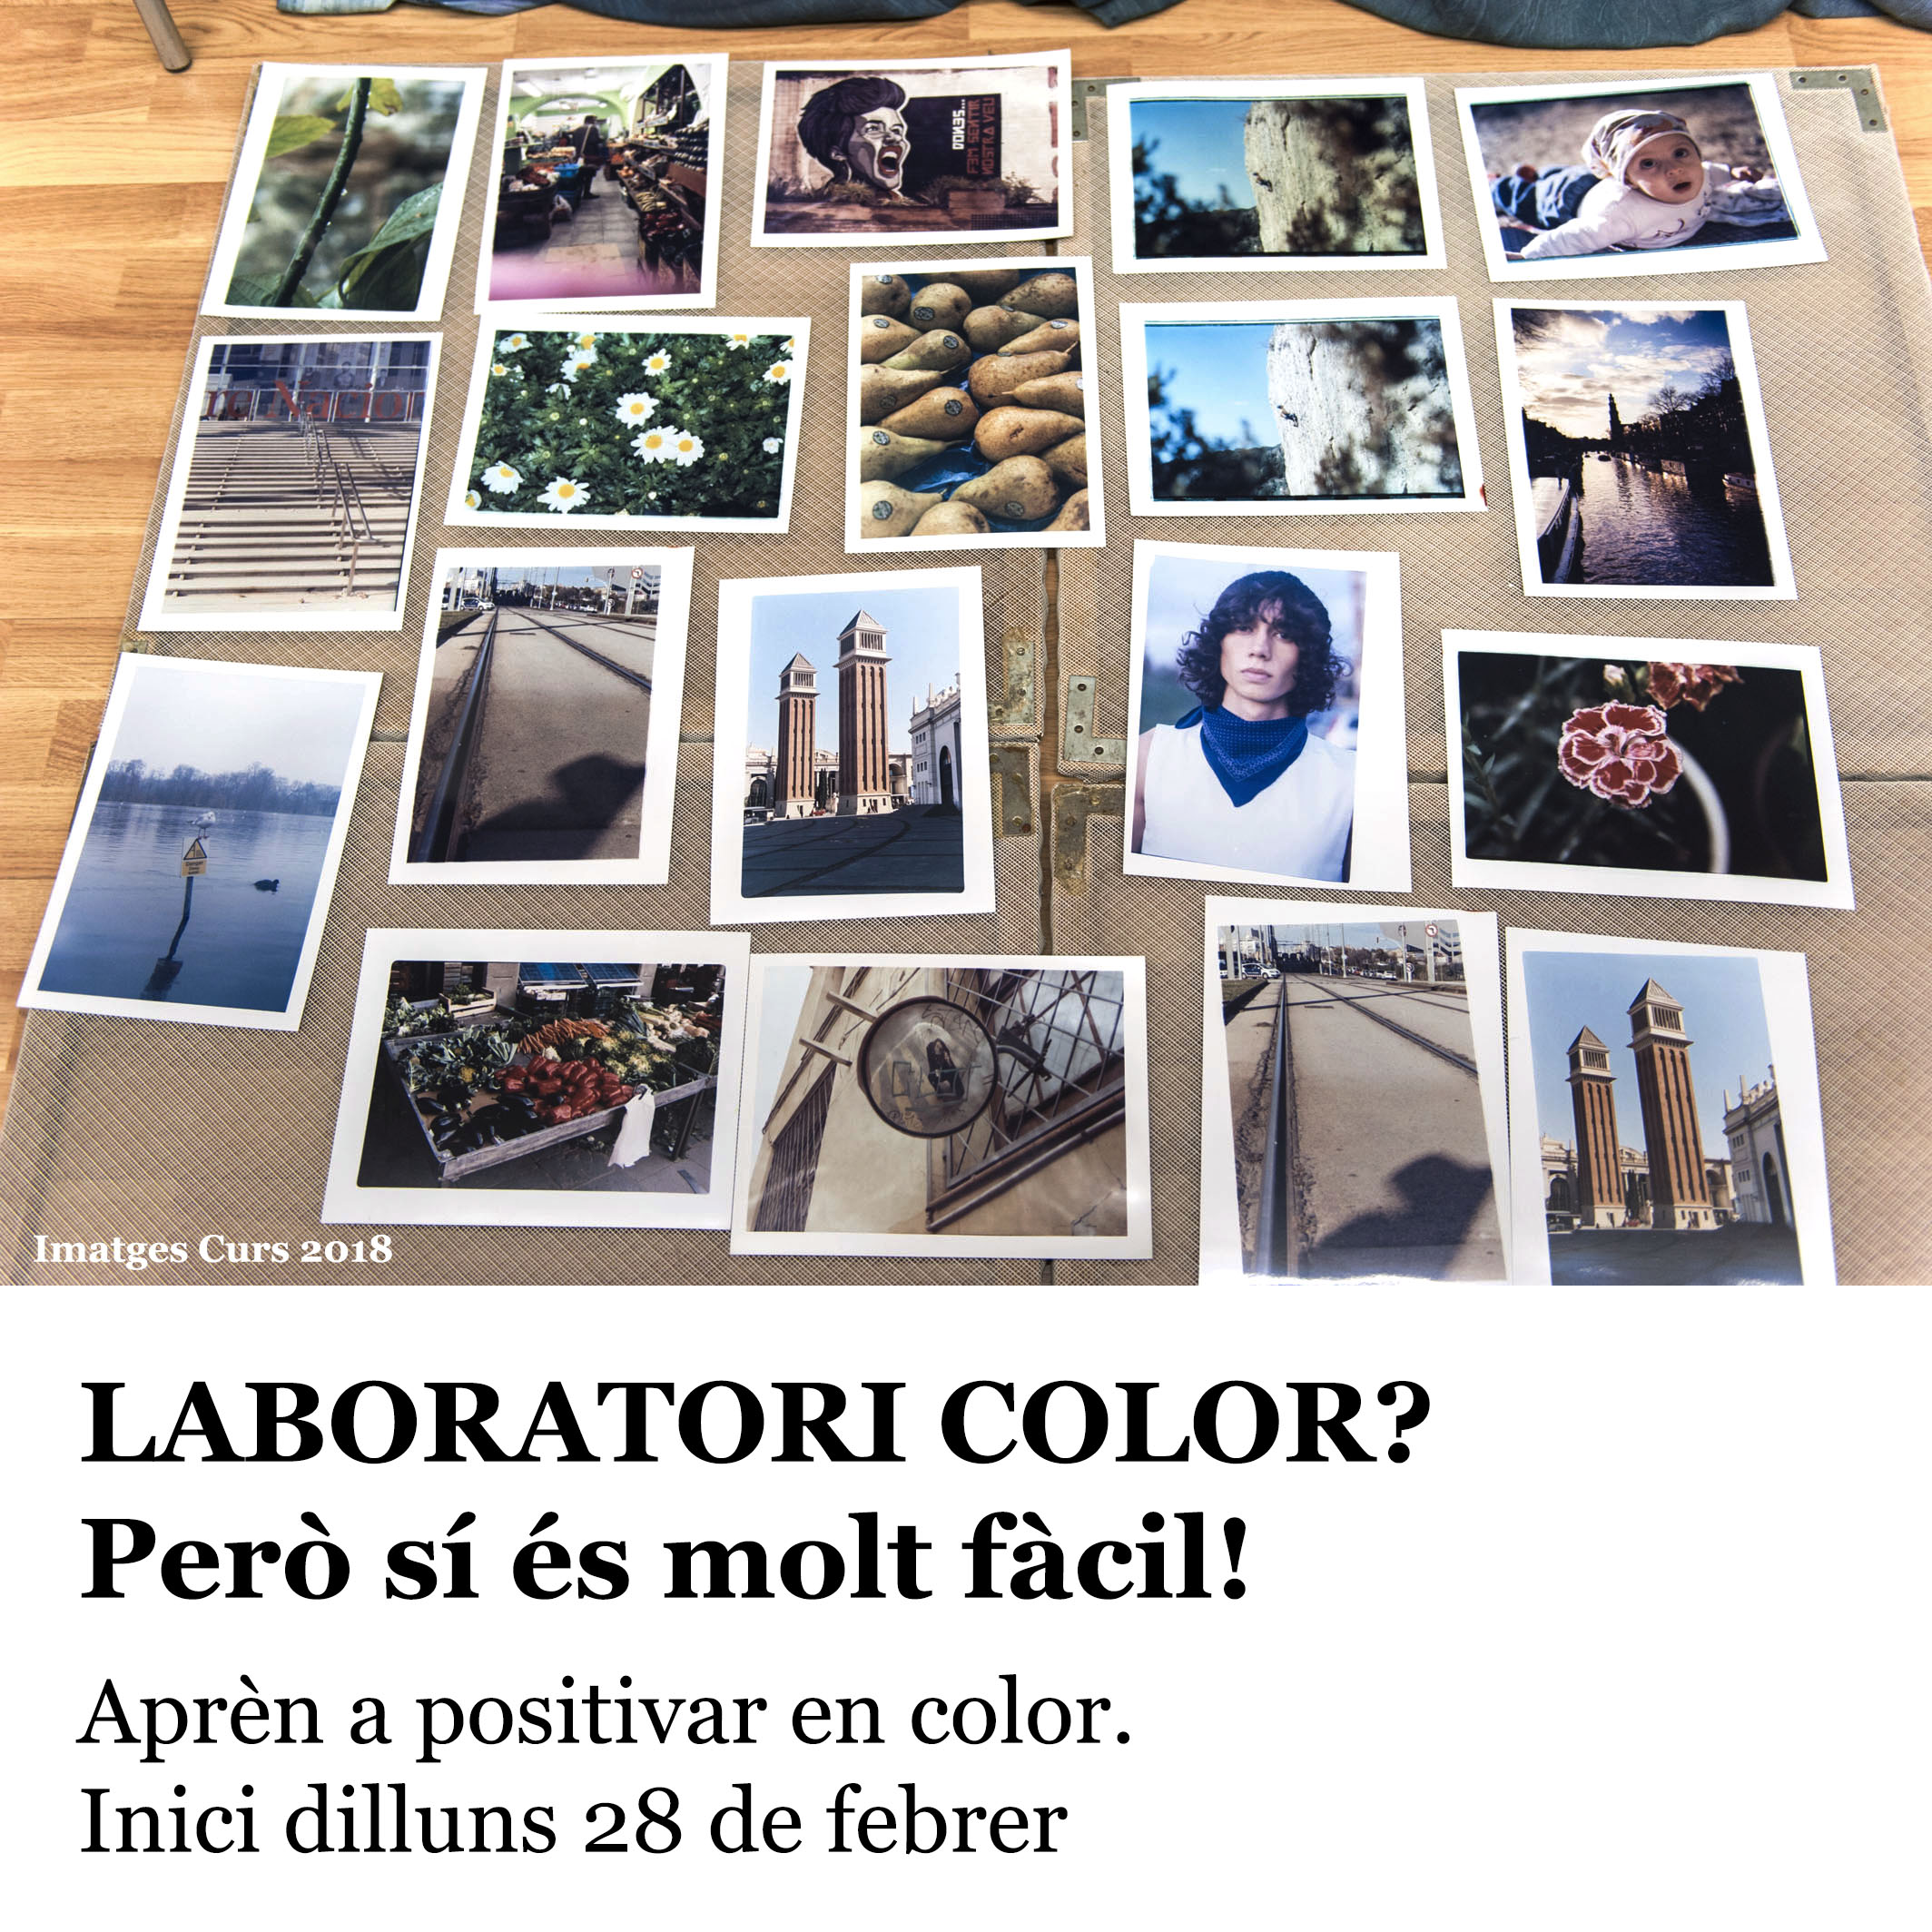 LABORATORI COLOR